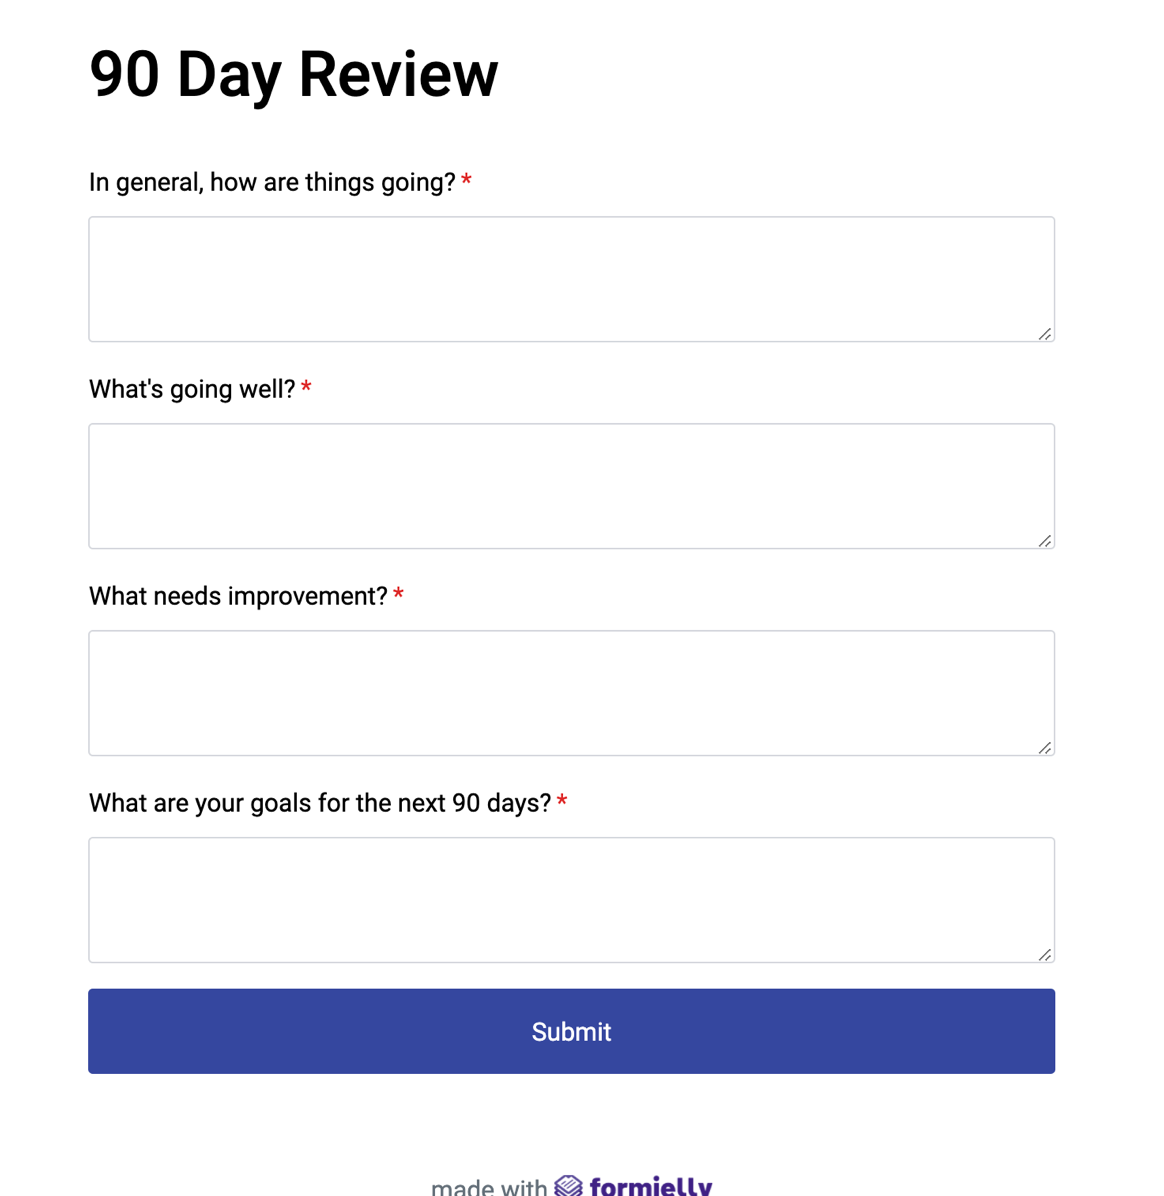 Secure anonymous feedback form for customer reviews.